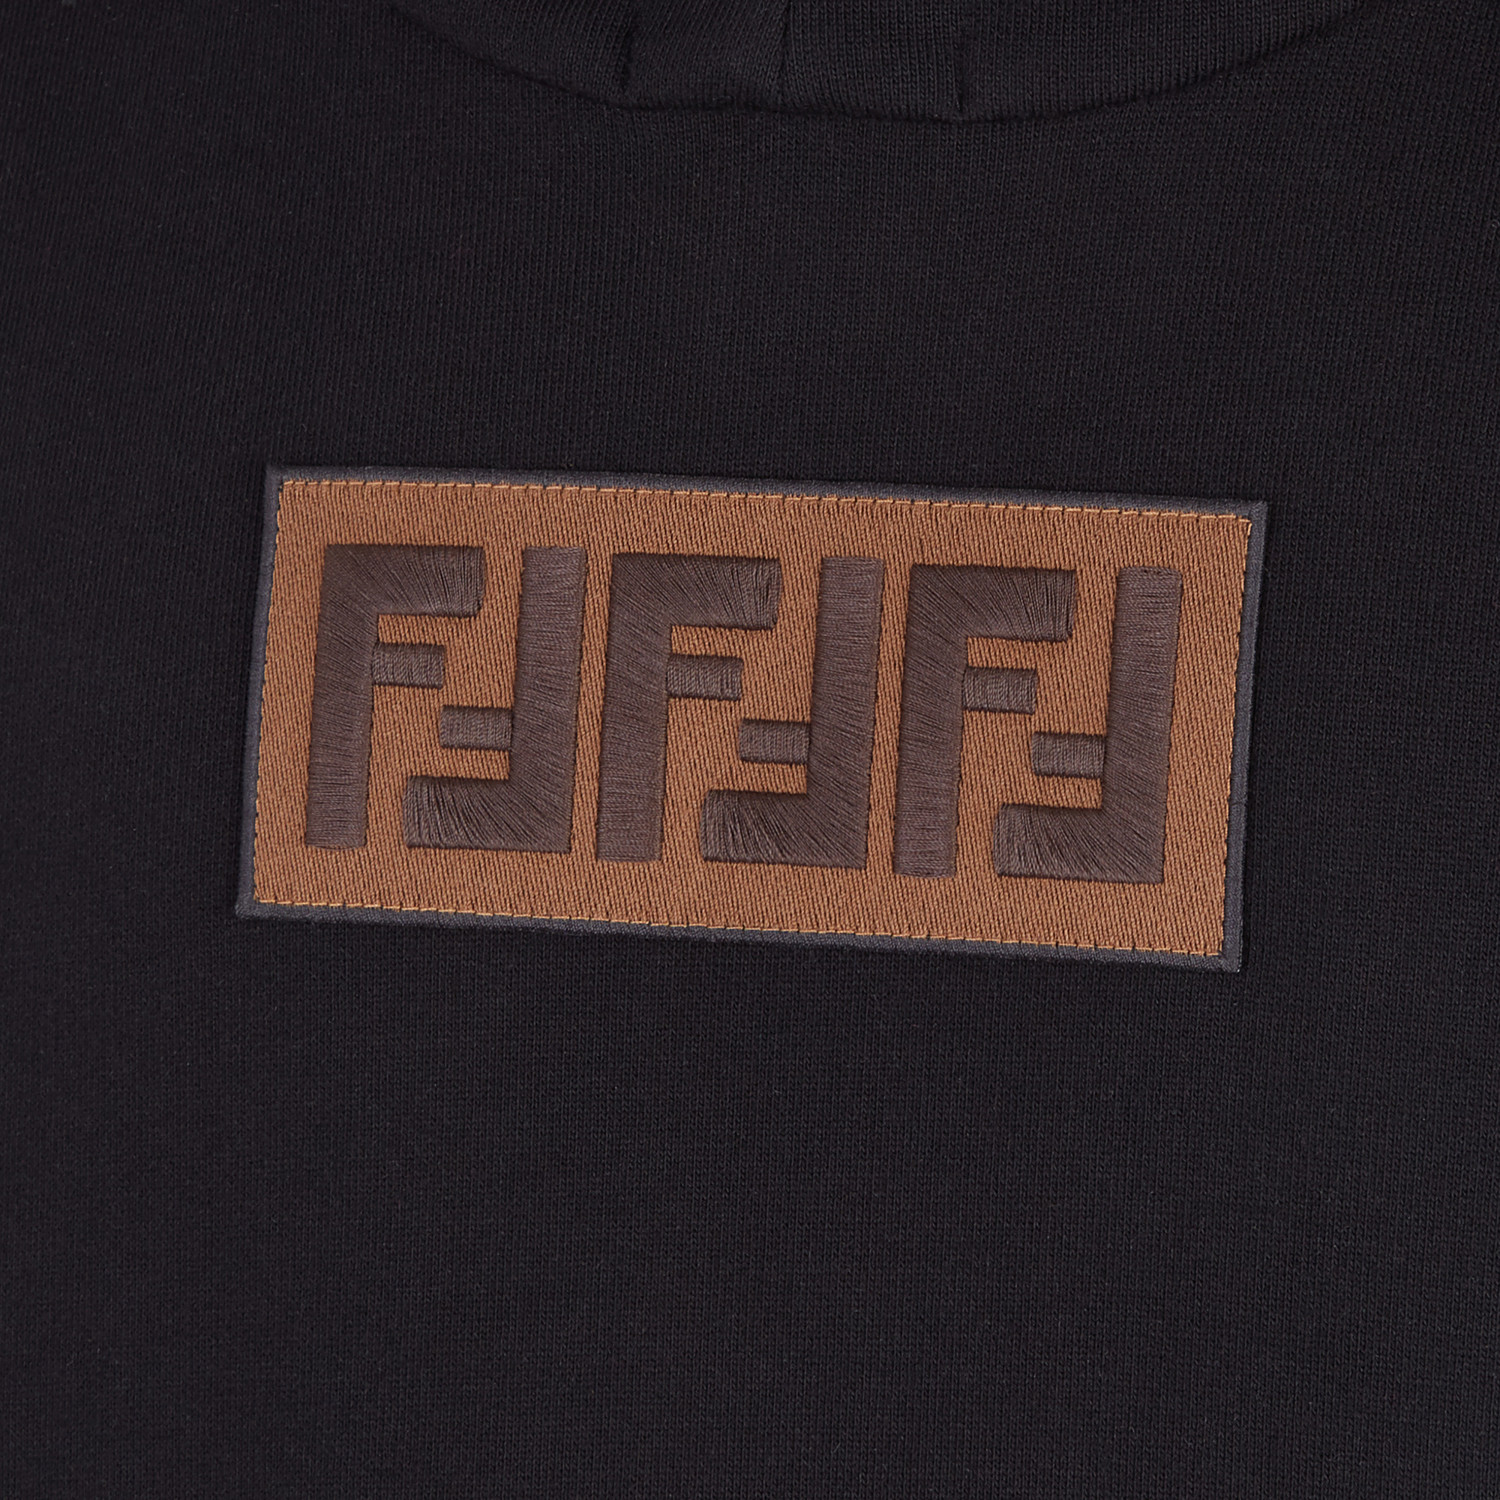 FENDI SWEATSHIRT - Black cotton and cashmere sweatshirt - view 3 detail